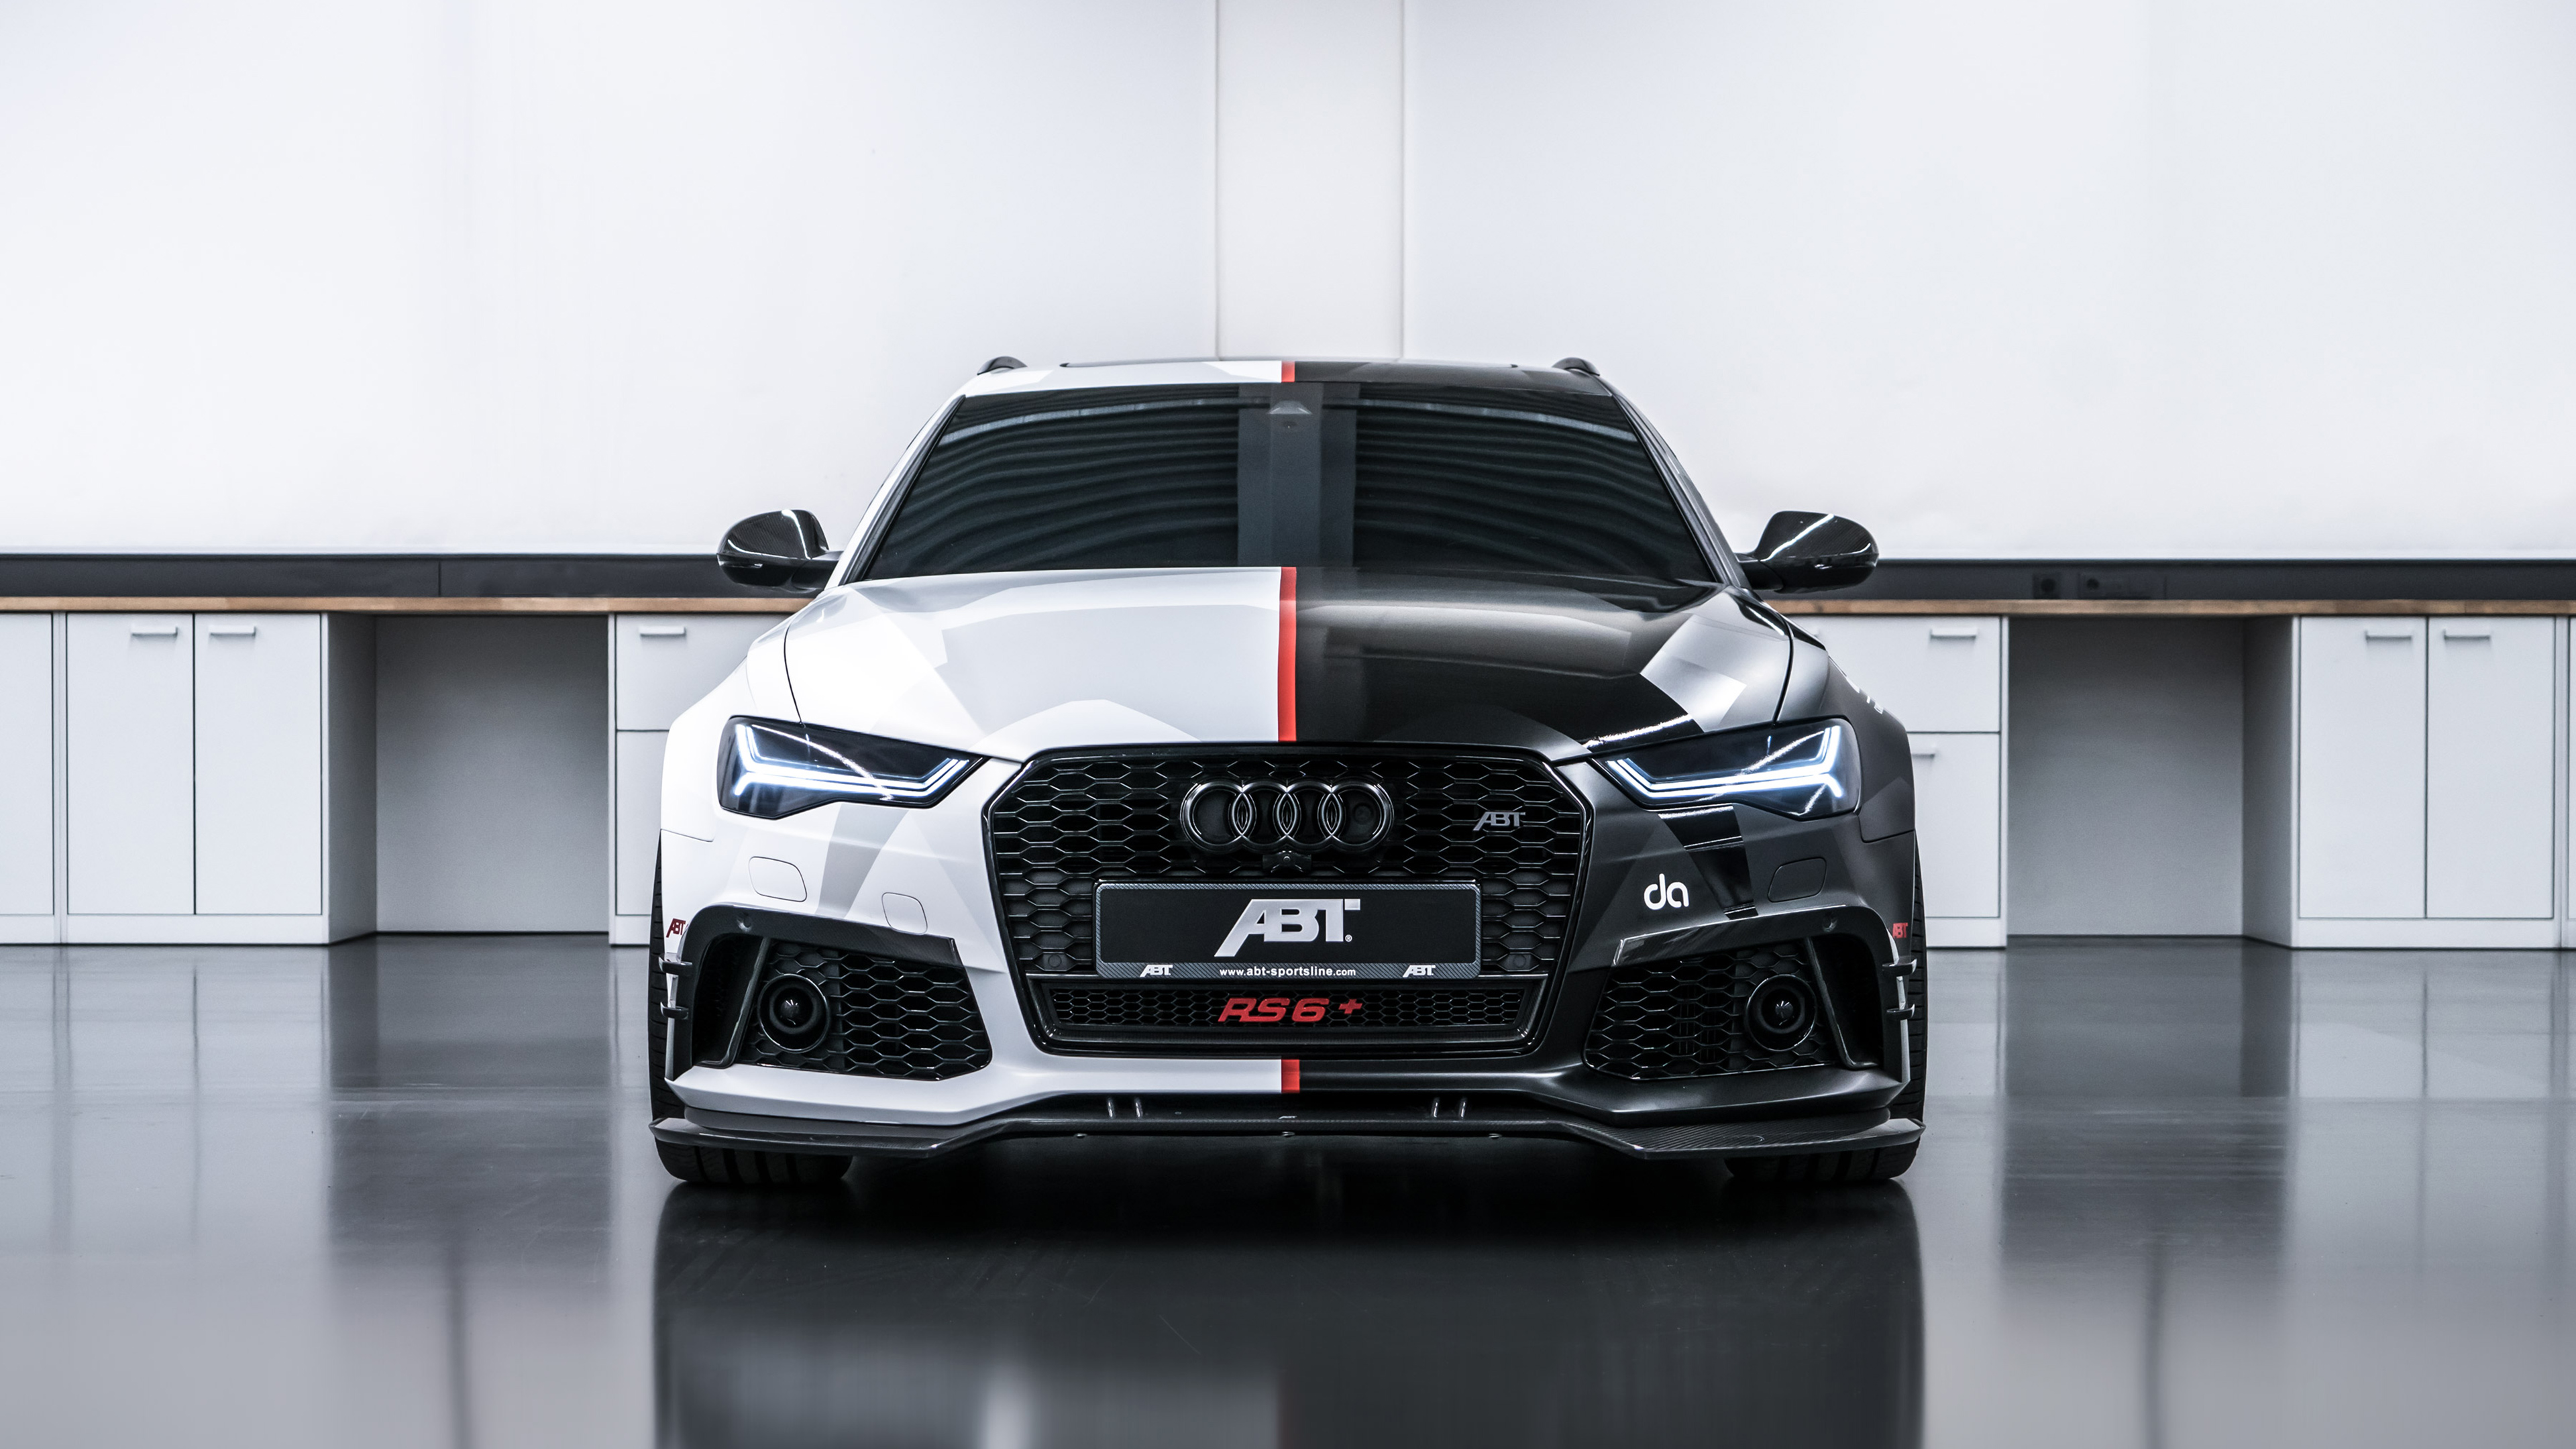 Audi A6 Wallpaper Hd 2018 Abt Audi Rs6 Avant For Jon Olsson 4k 3 Wallpaper Hd